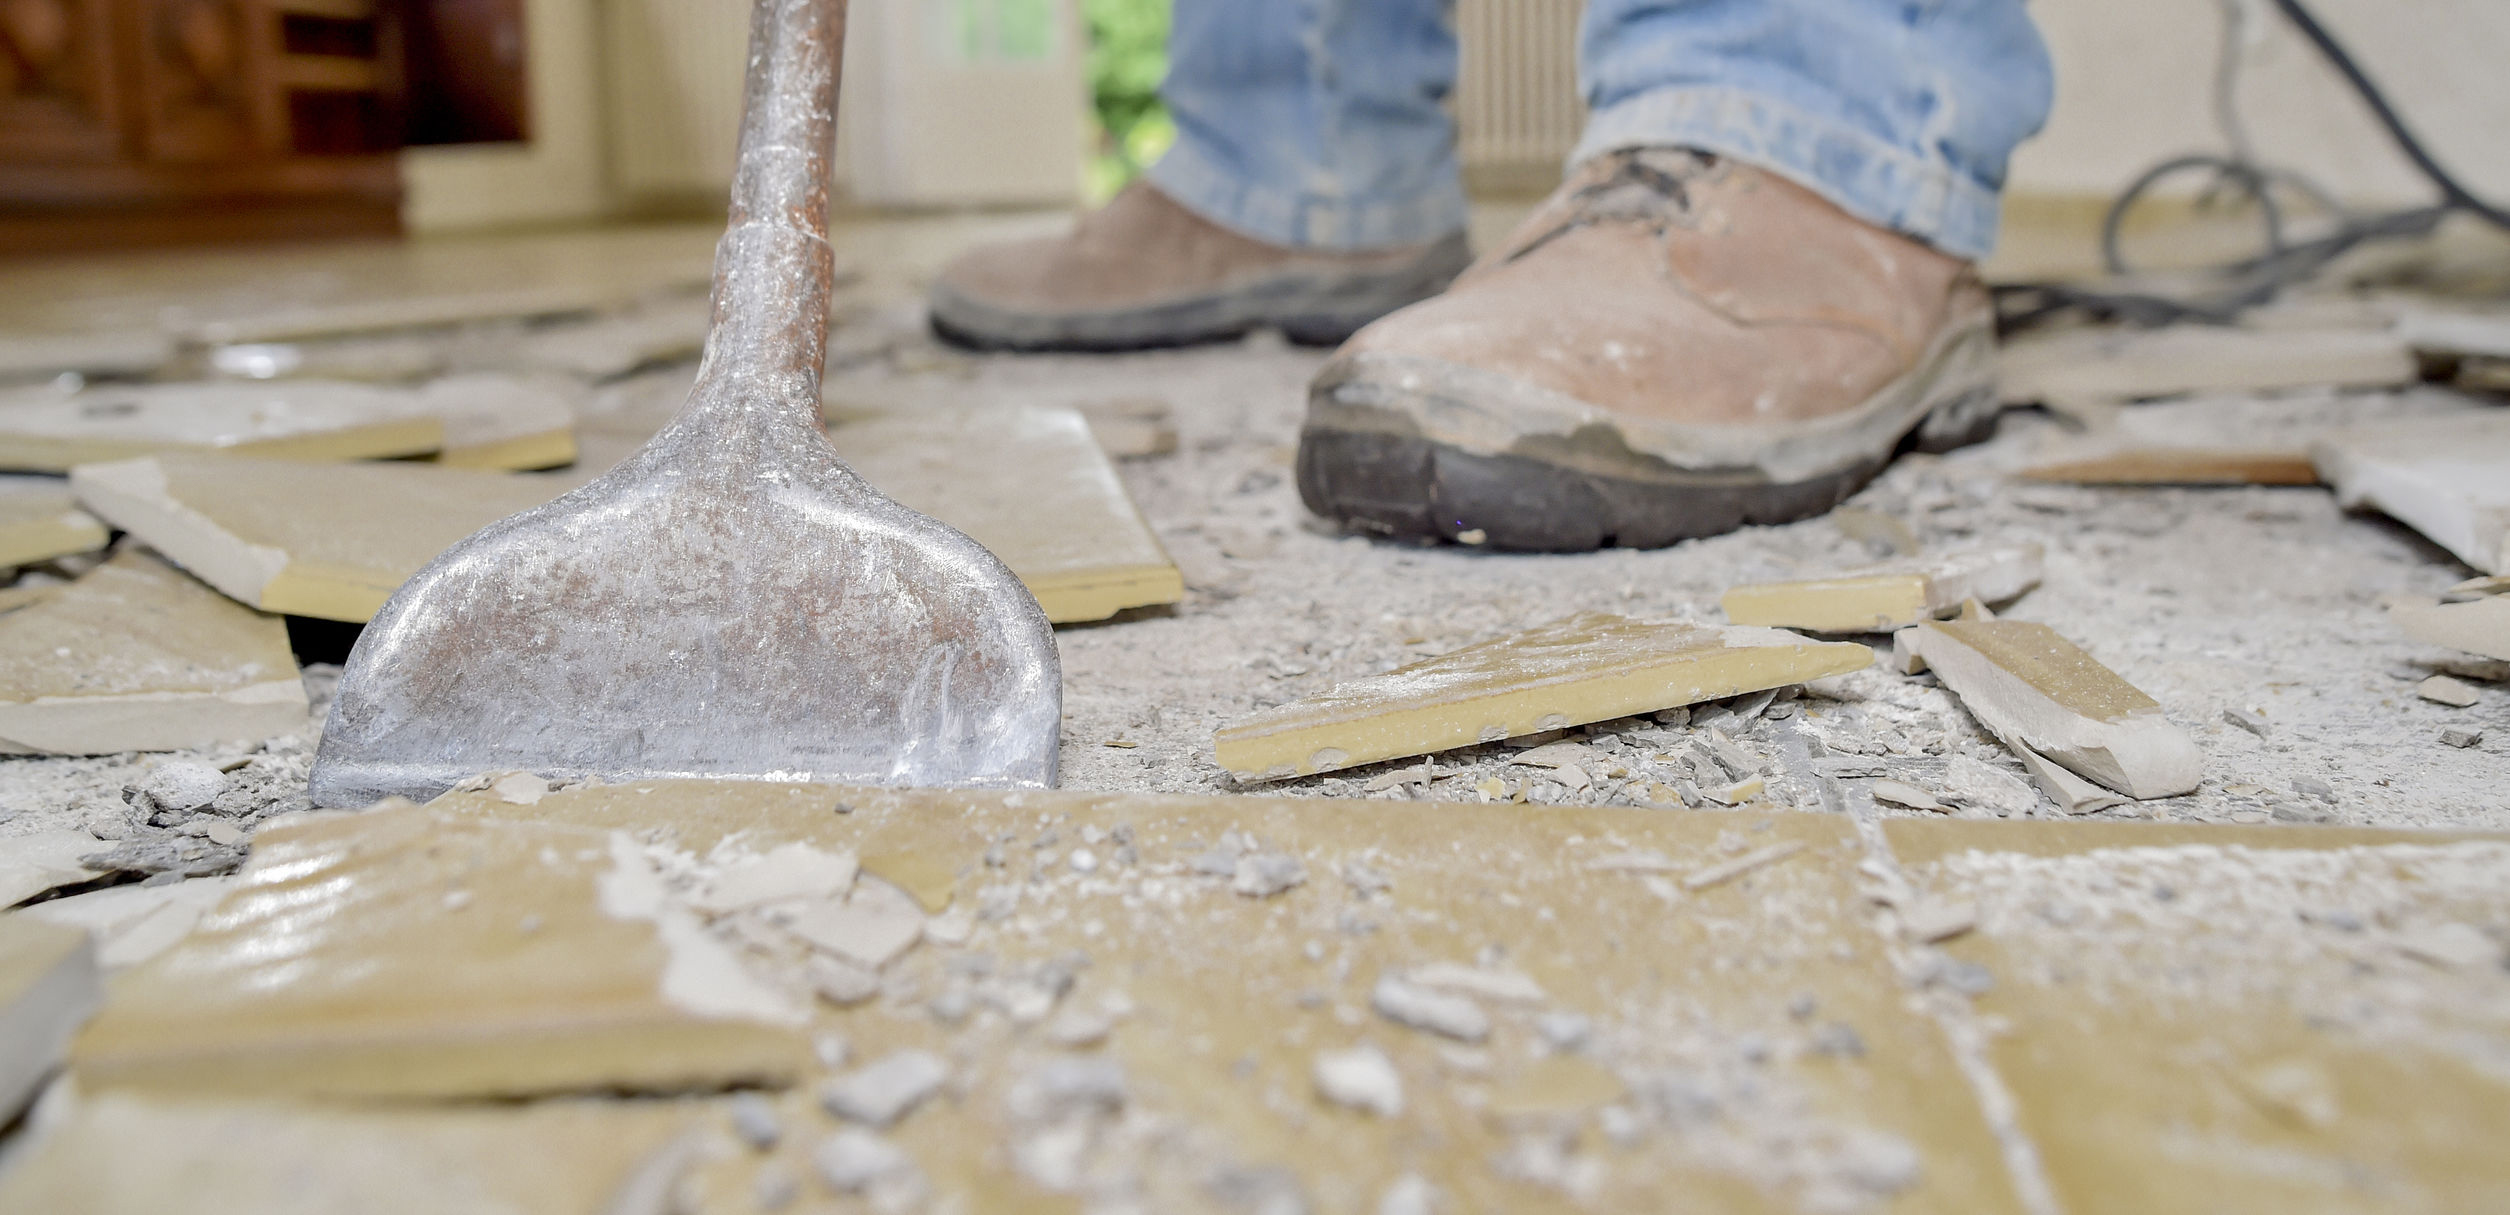 Man removing old floor tiles